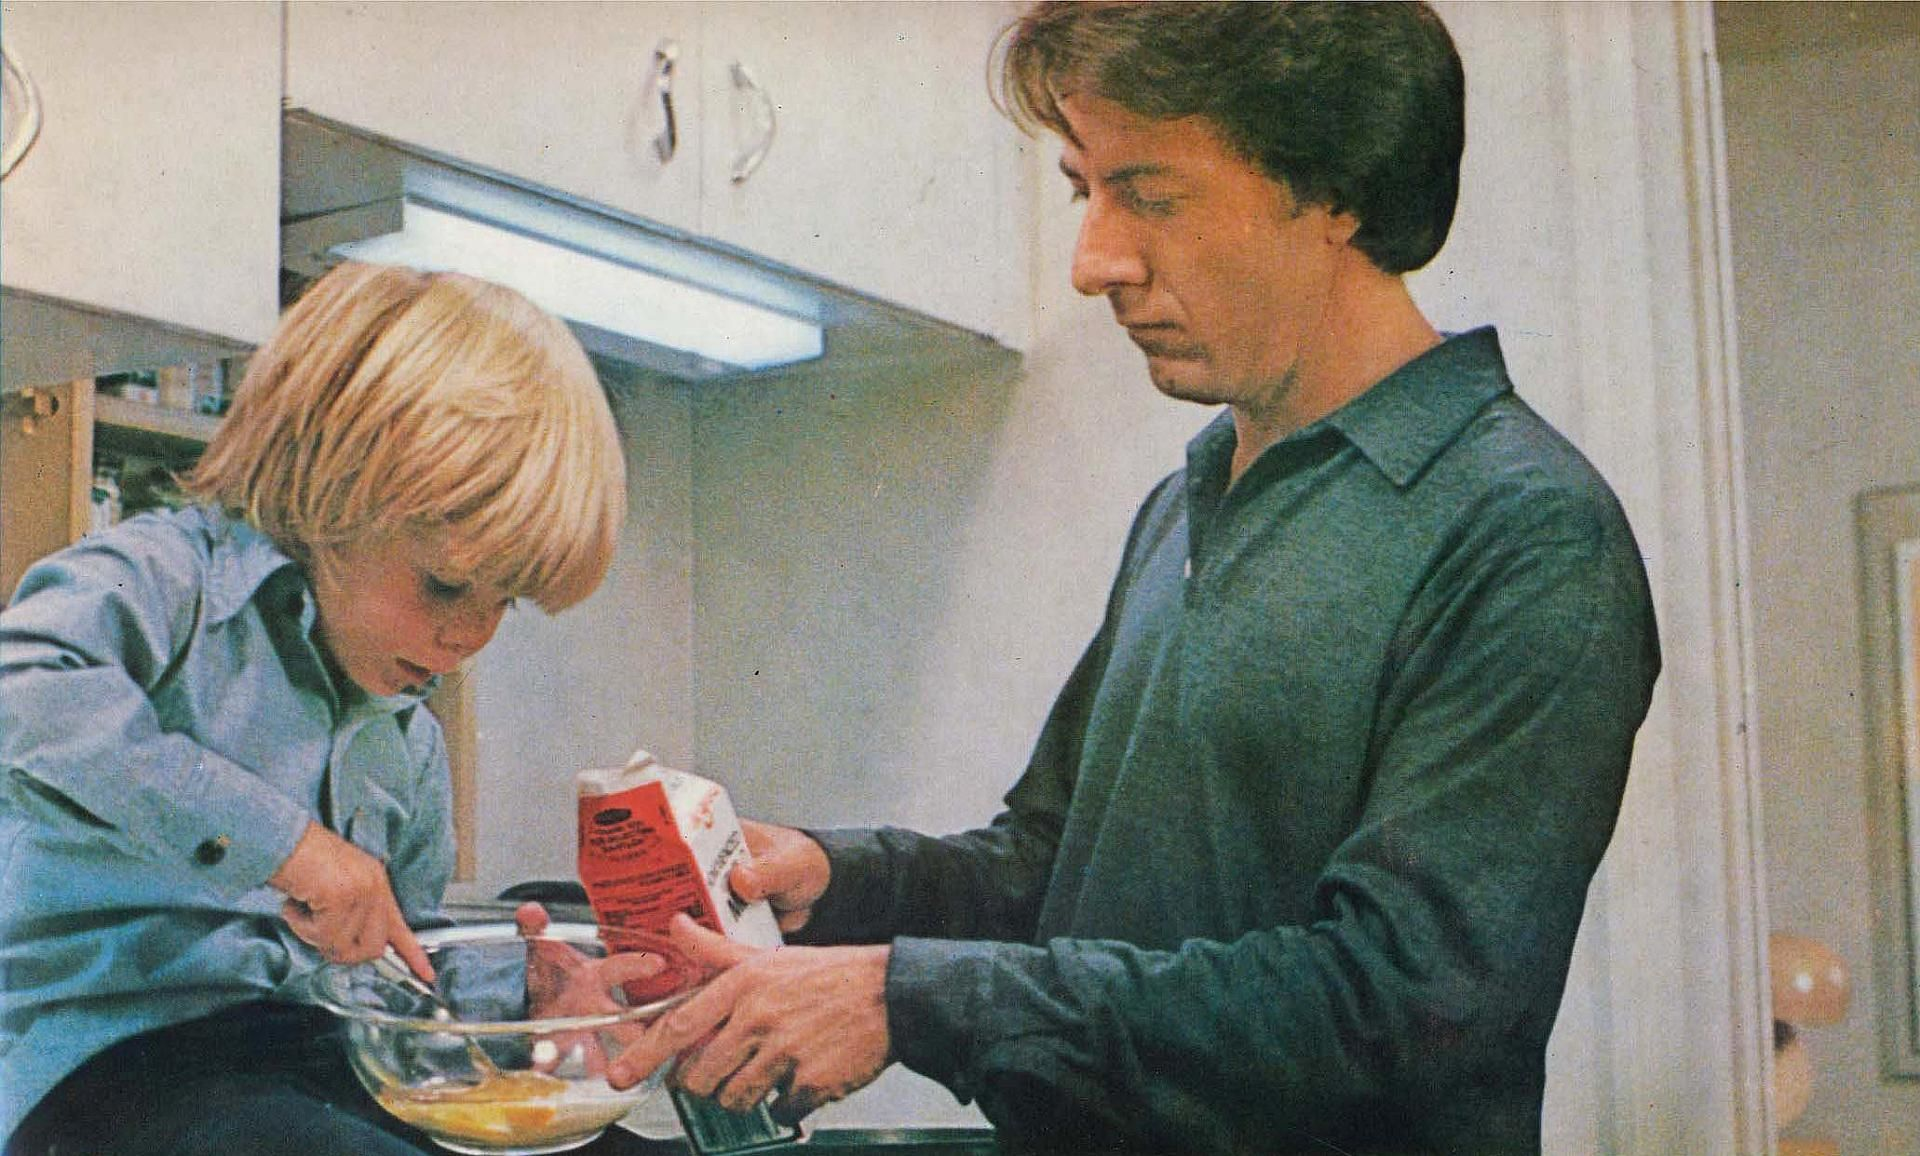 Image result for kramer vs kramer making breakfast